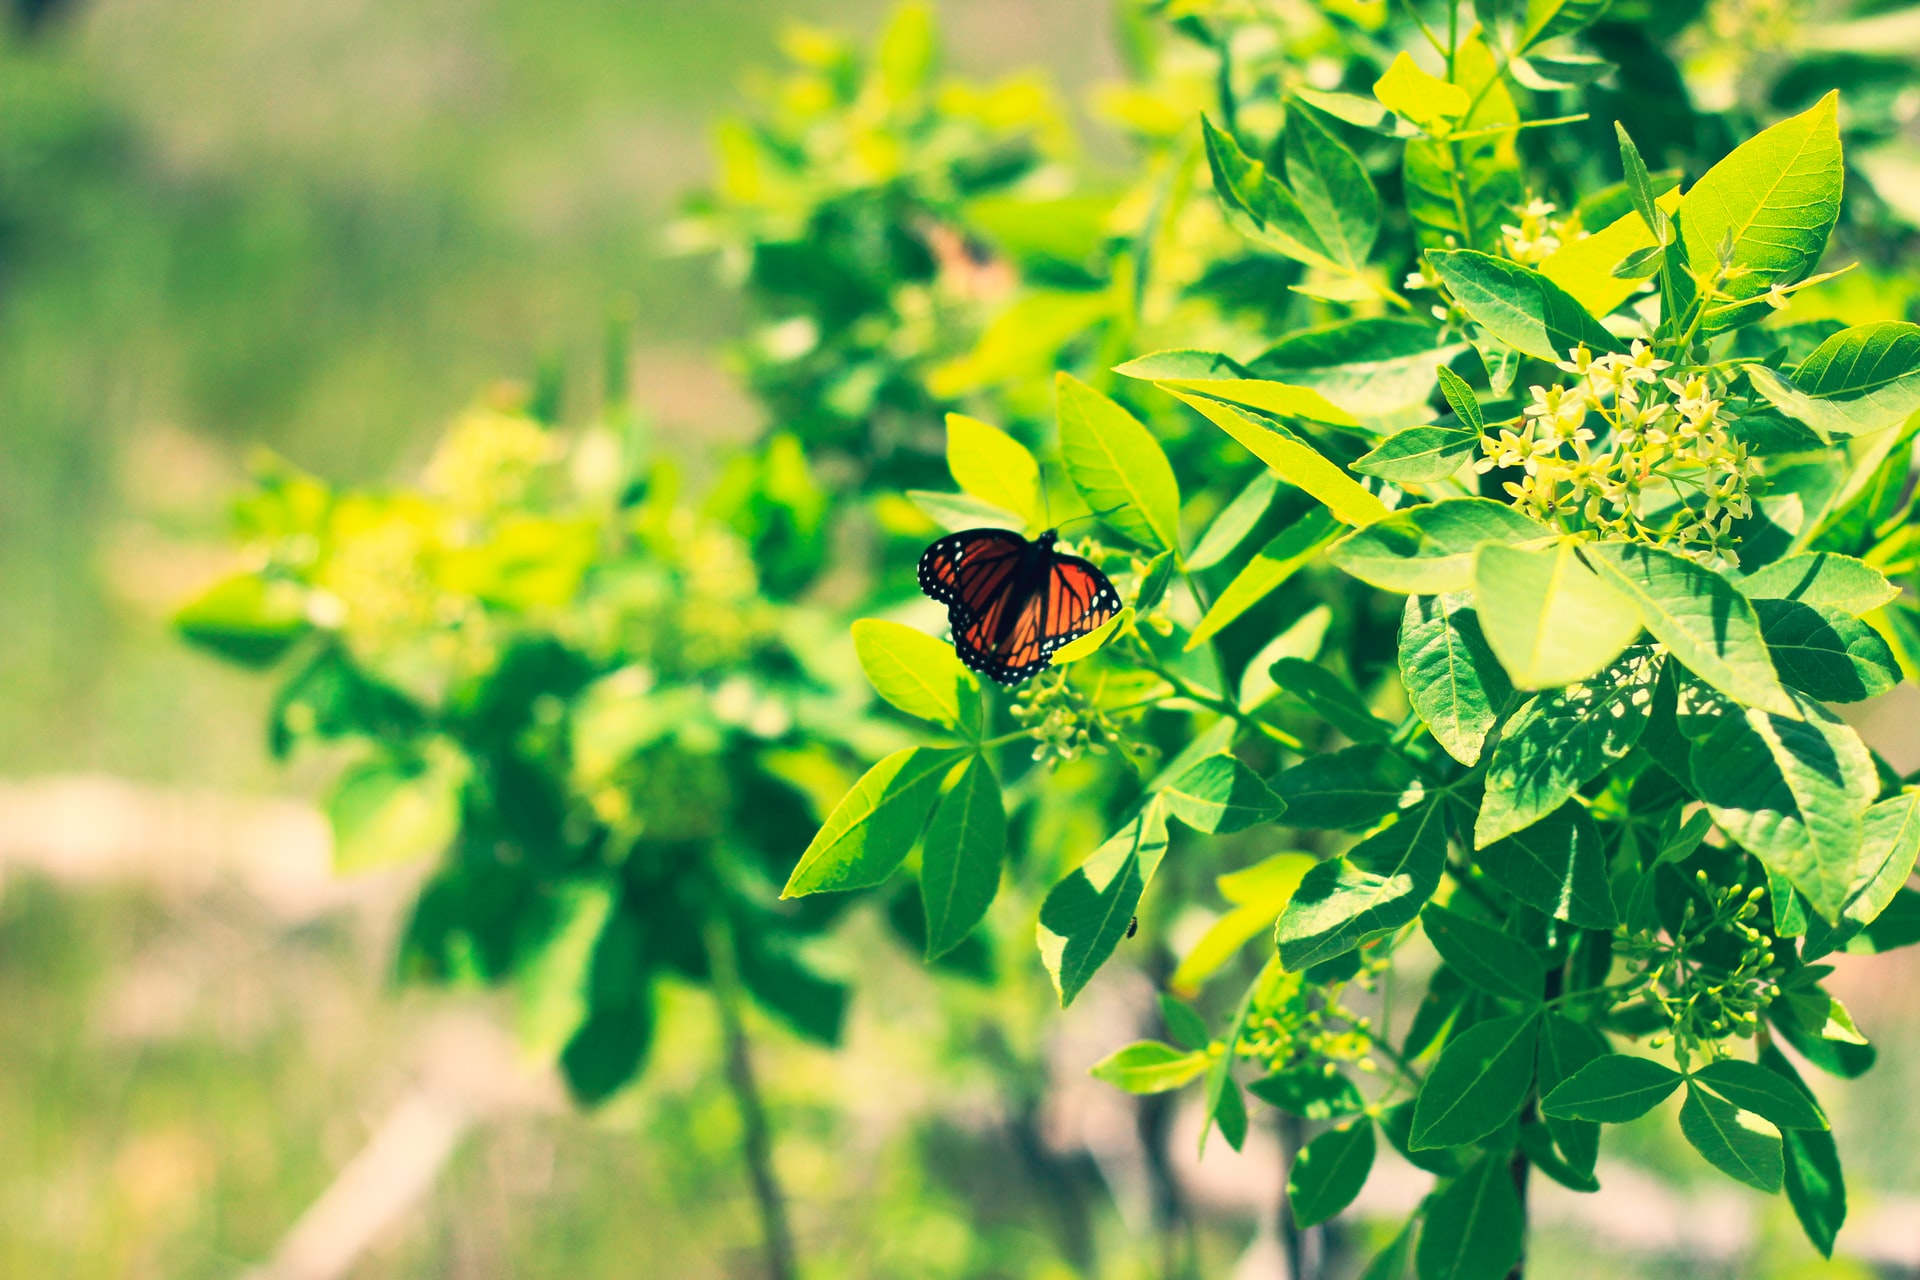 picture of a butterfly on a plant